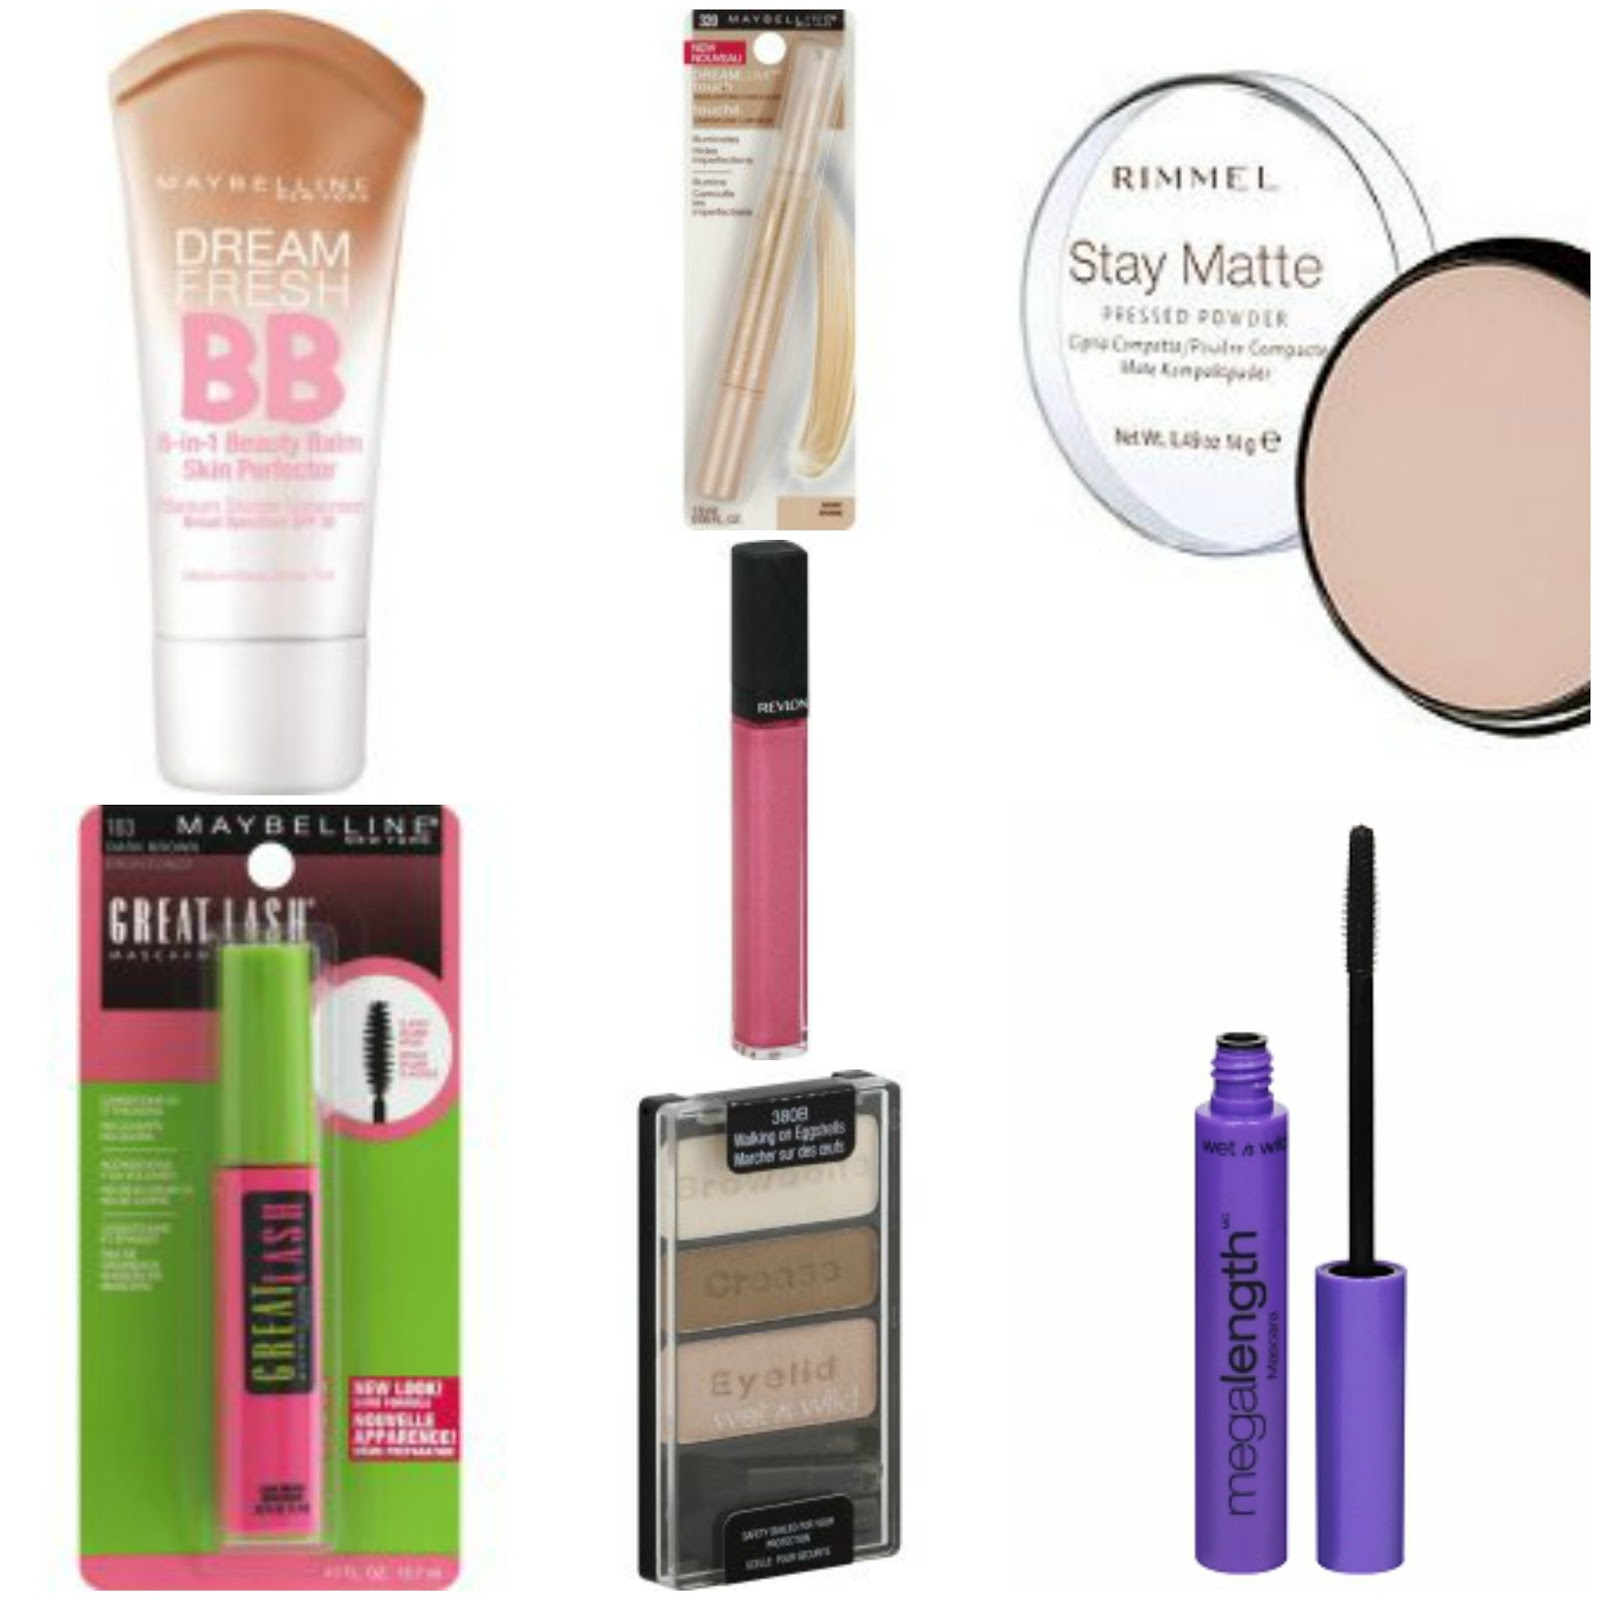 Makeup makeup Kit  natural look beginners Ask for Basic for Elle: Teens/Beginners